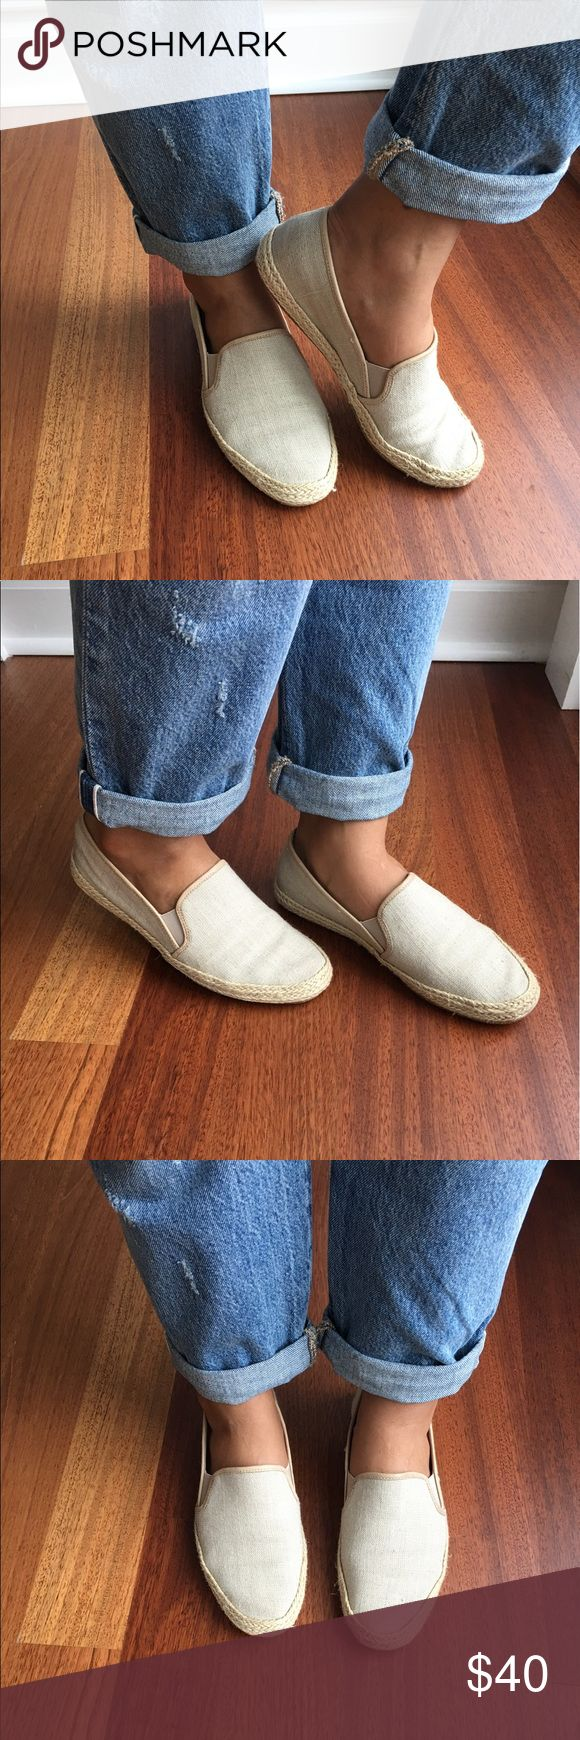 Belle by Sigerson Morrison espadrille Nudie canvas Belle Sigerson Morrison espadrille loafers Nudie canvas- this is so stylish and comfortable-EUC- cream canvas upper, jute braided around, leather soles, size 8.5 B. Belle by Sigerson Morrison Shoes Espadrilles